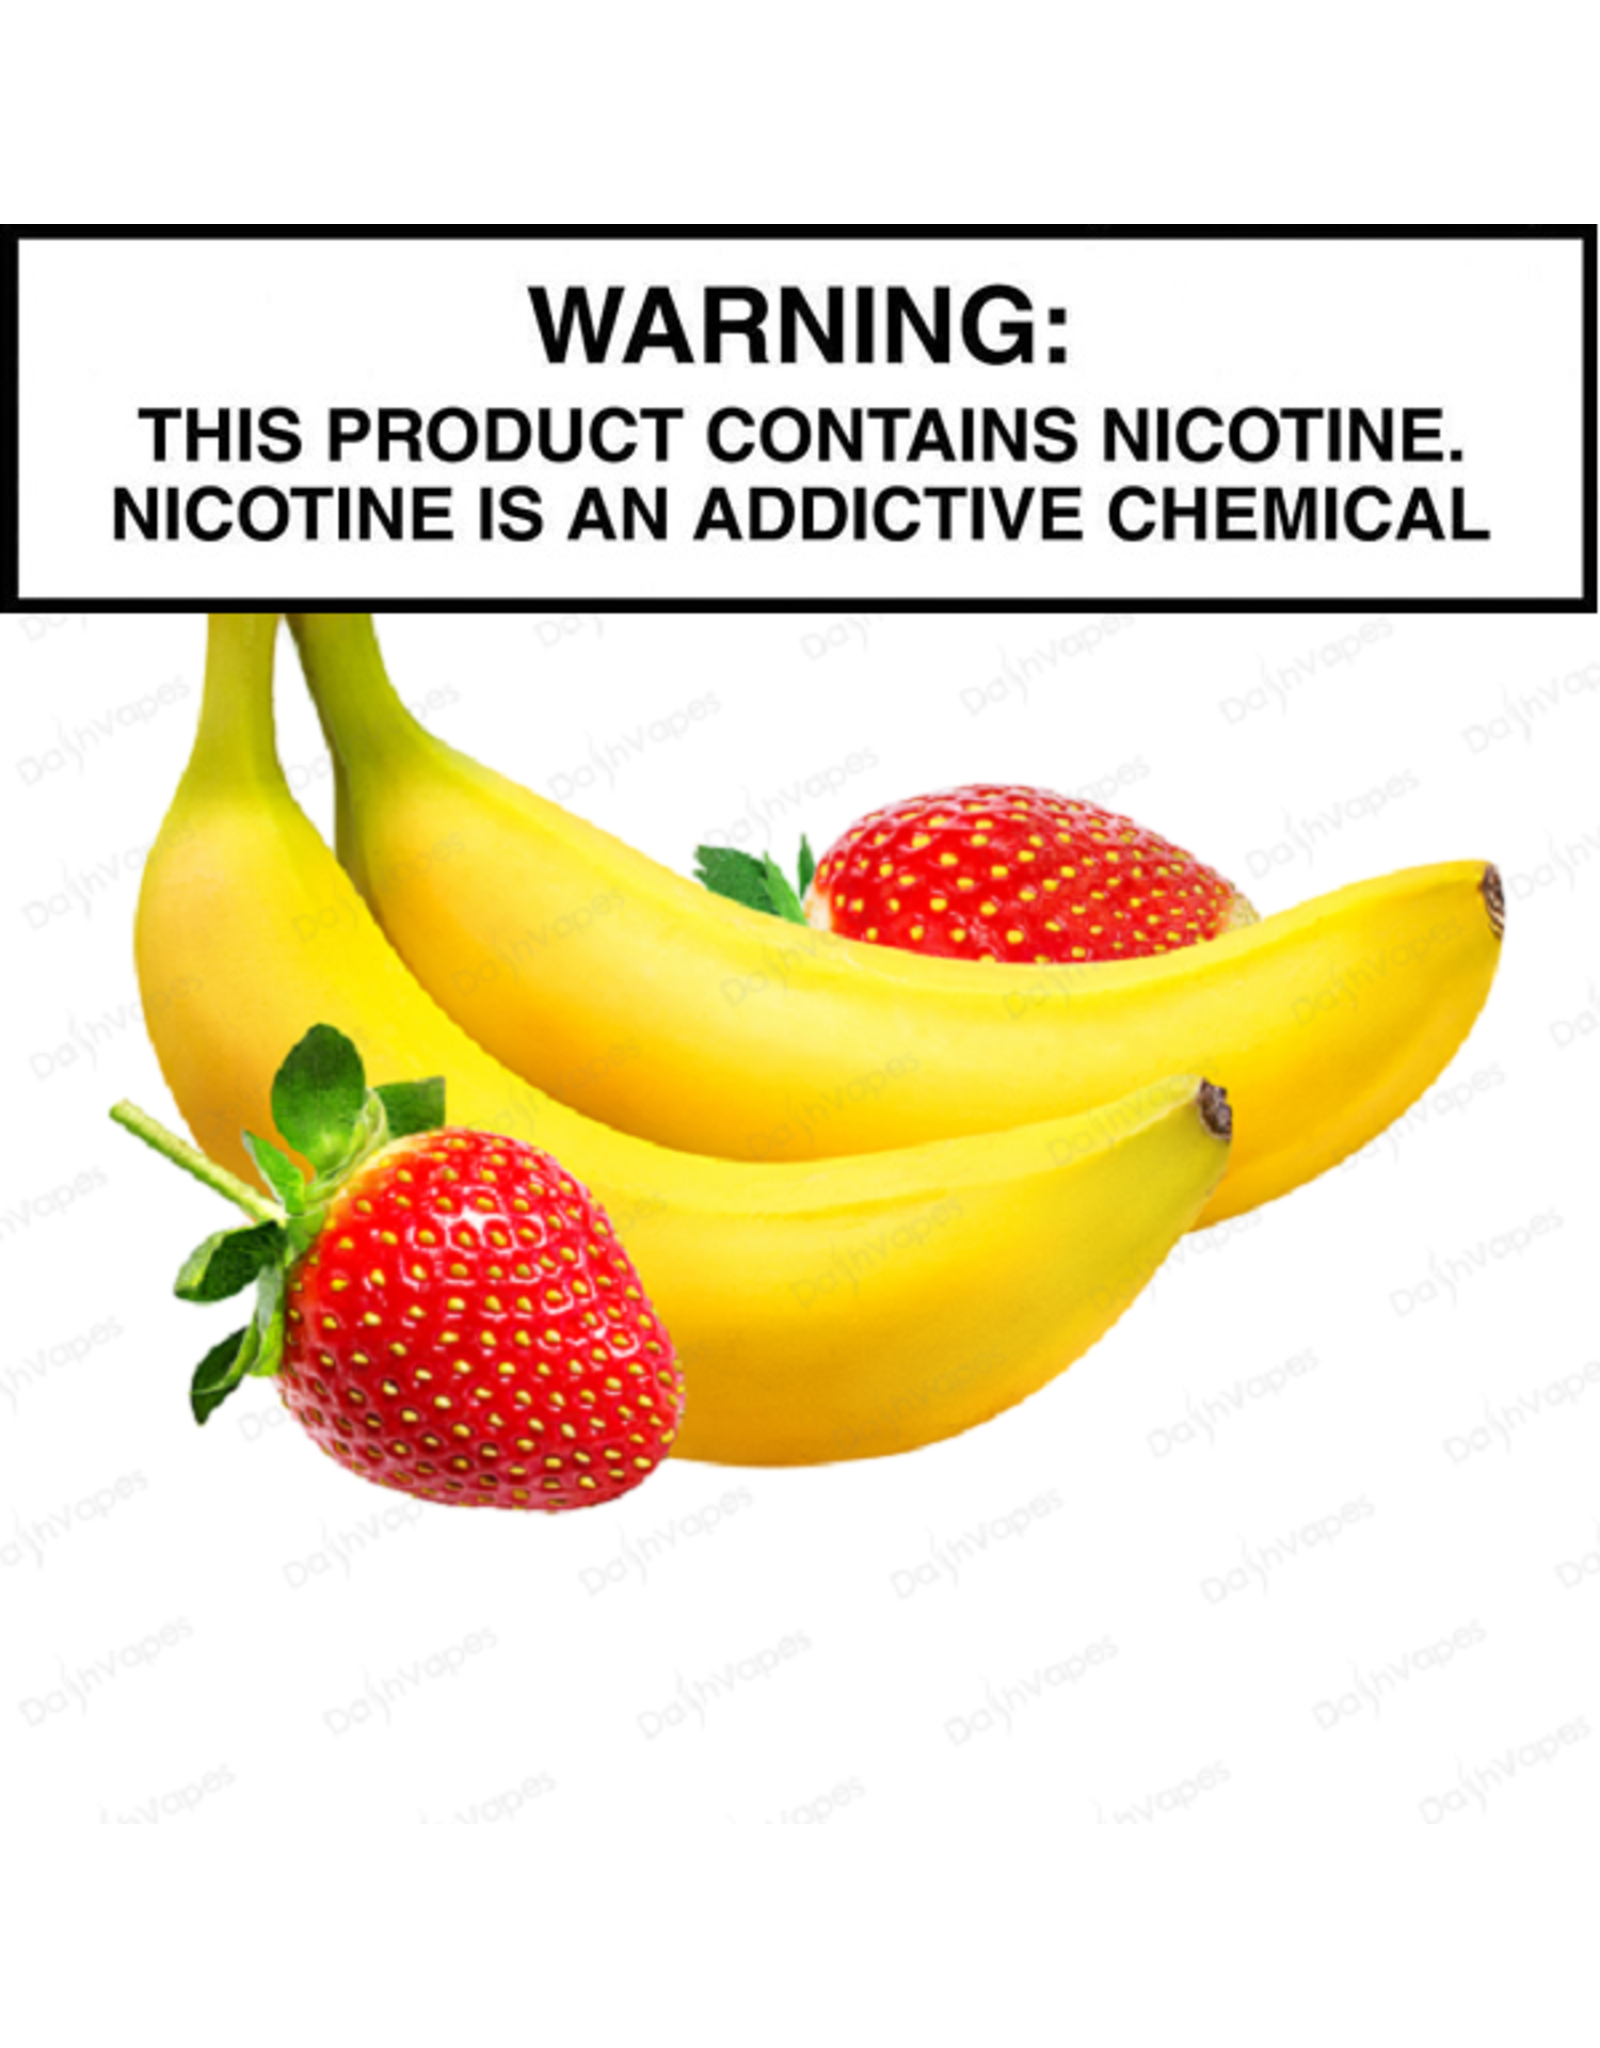 N2 Vapes House Juice Strawberry Banana E-Juice